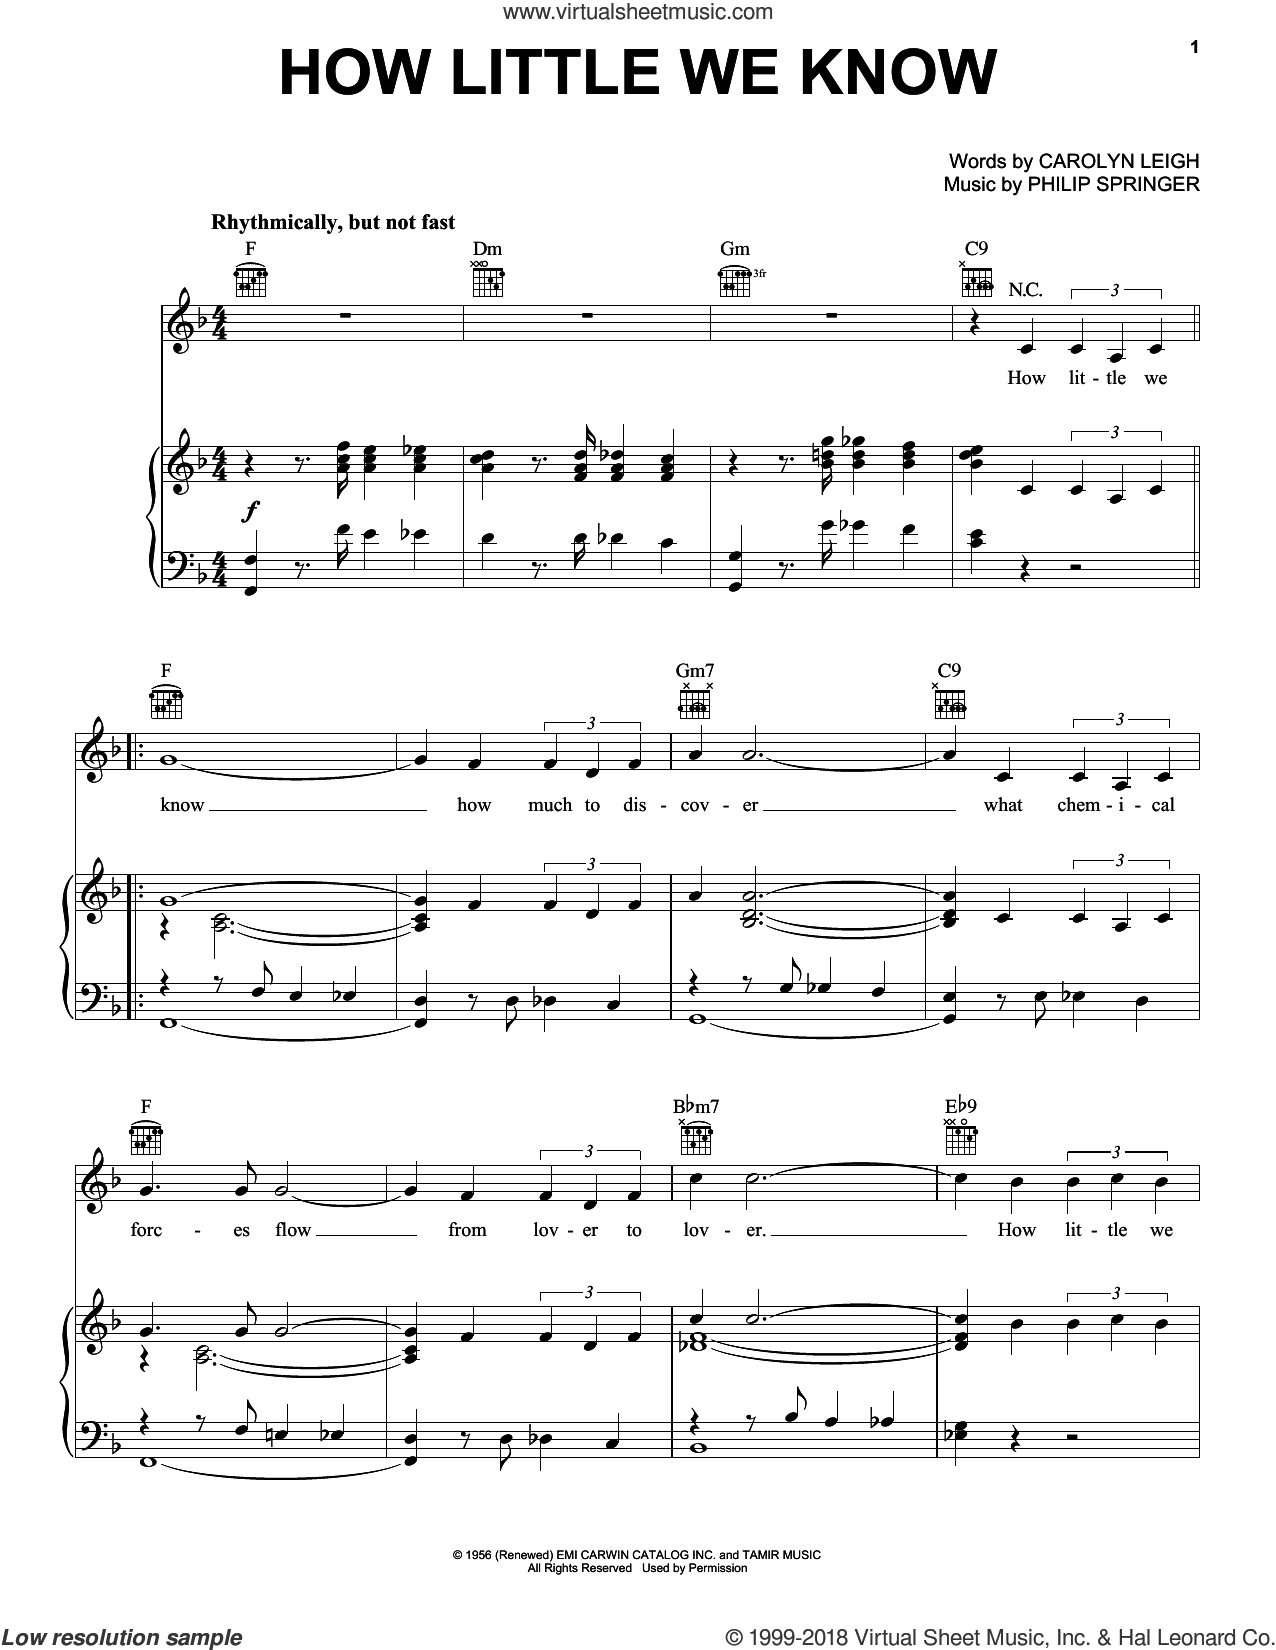 How Little We Know sheet music for voice, piano or guitar by Carolyn Leigh and Philip Springer, intermediate. Score Image Preview.